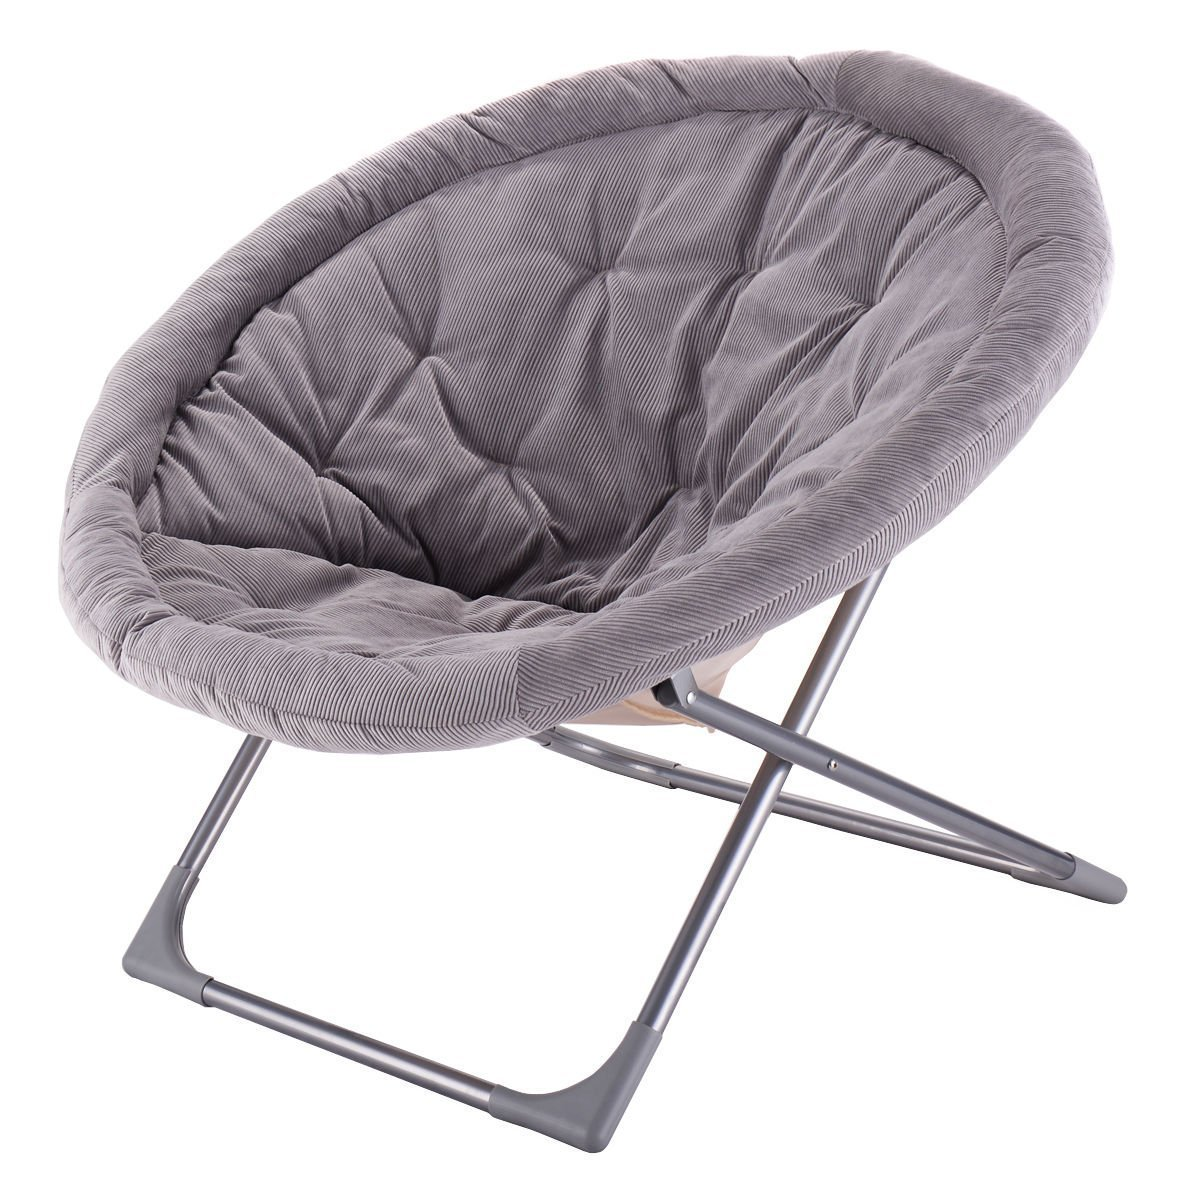 Papisan Chair Oversized Papasan Chair Home Furniture Design